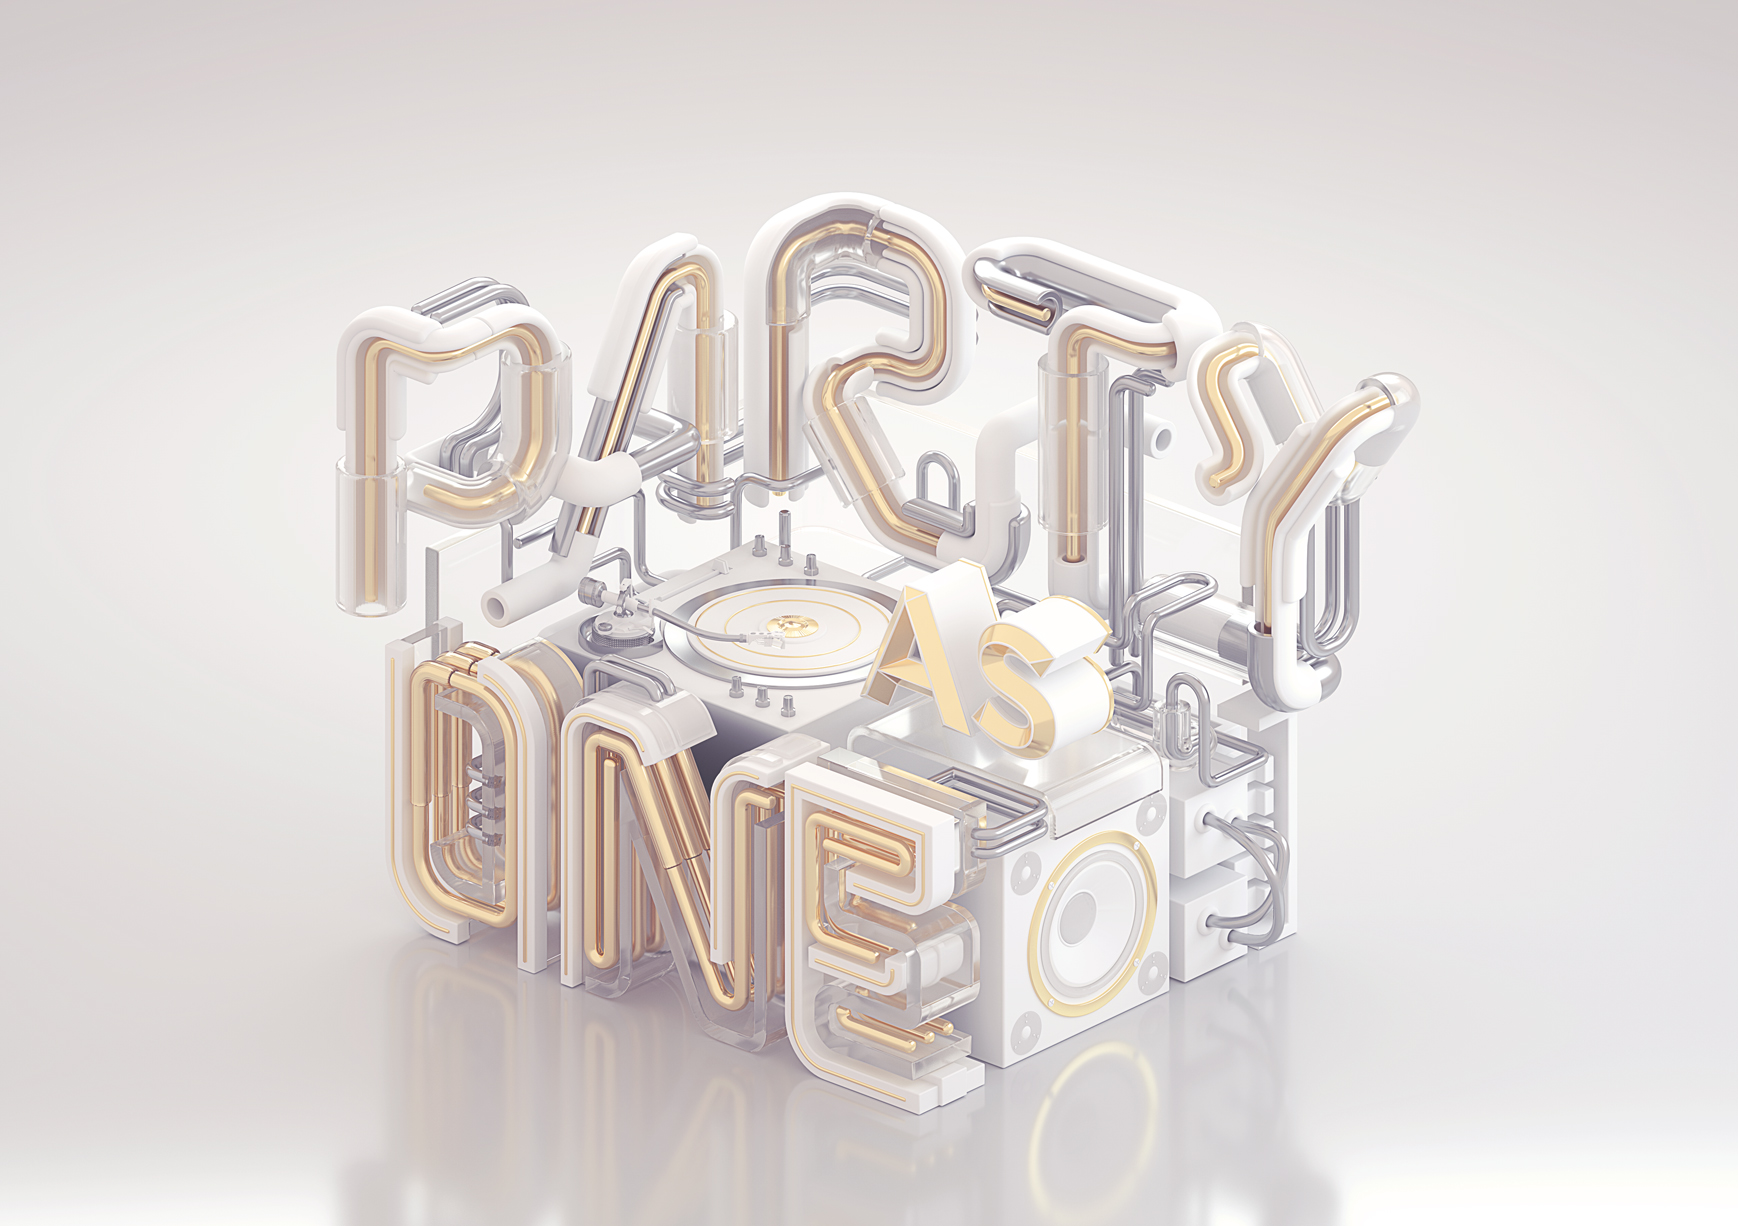 Party As One in White - A commercial typography key visual and motion graphics by Machineast graphic design studio Singapore